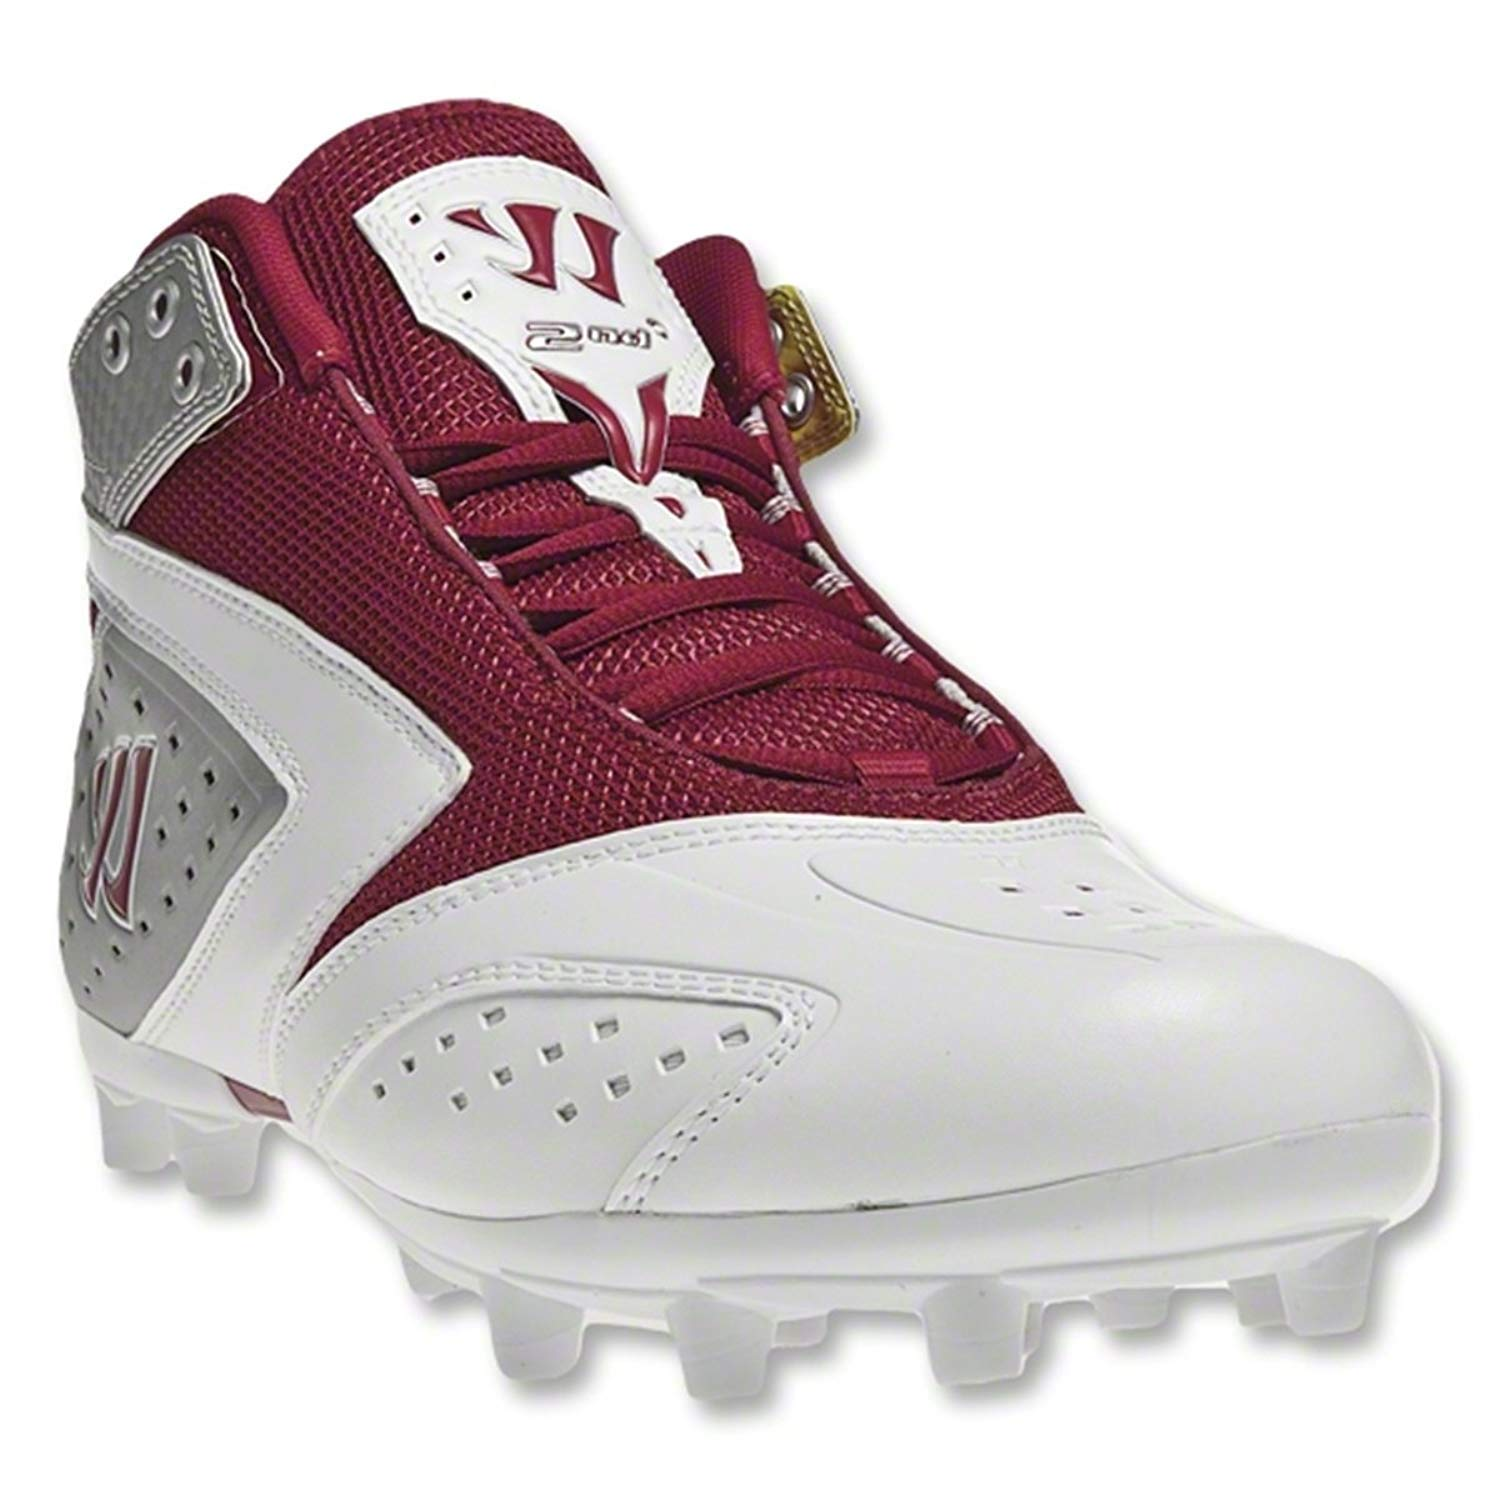 Warrior Lacrosse Men's wmssm2rd-m, White/Red, 11.5 M US by Warrior Sports